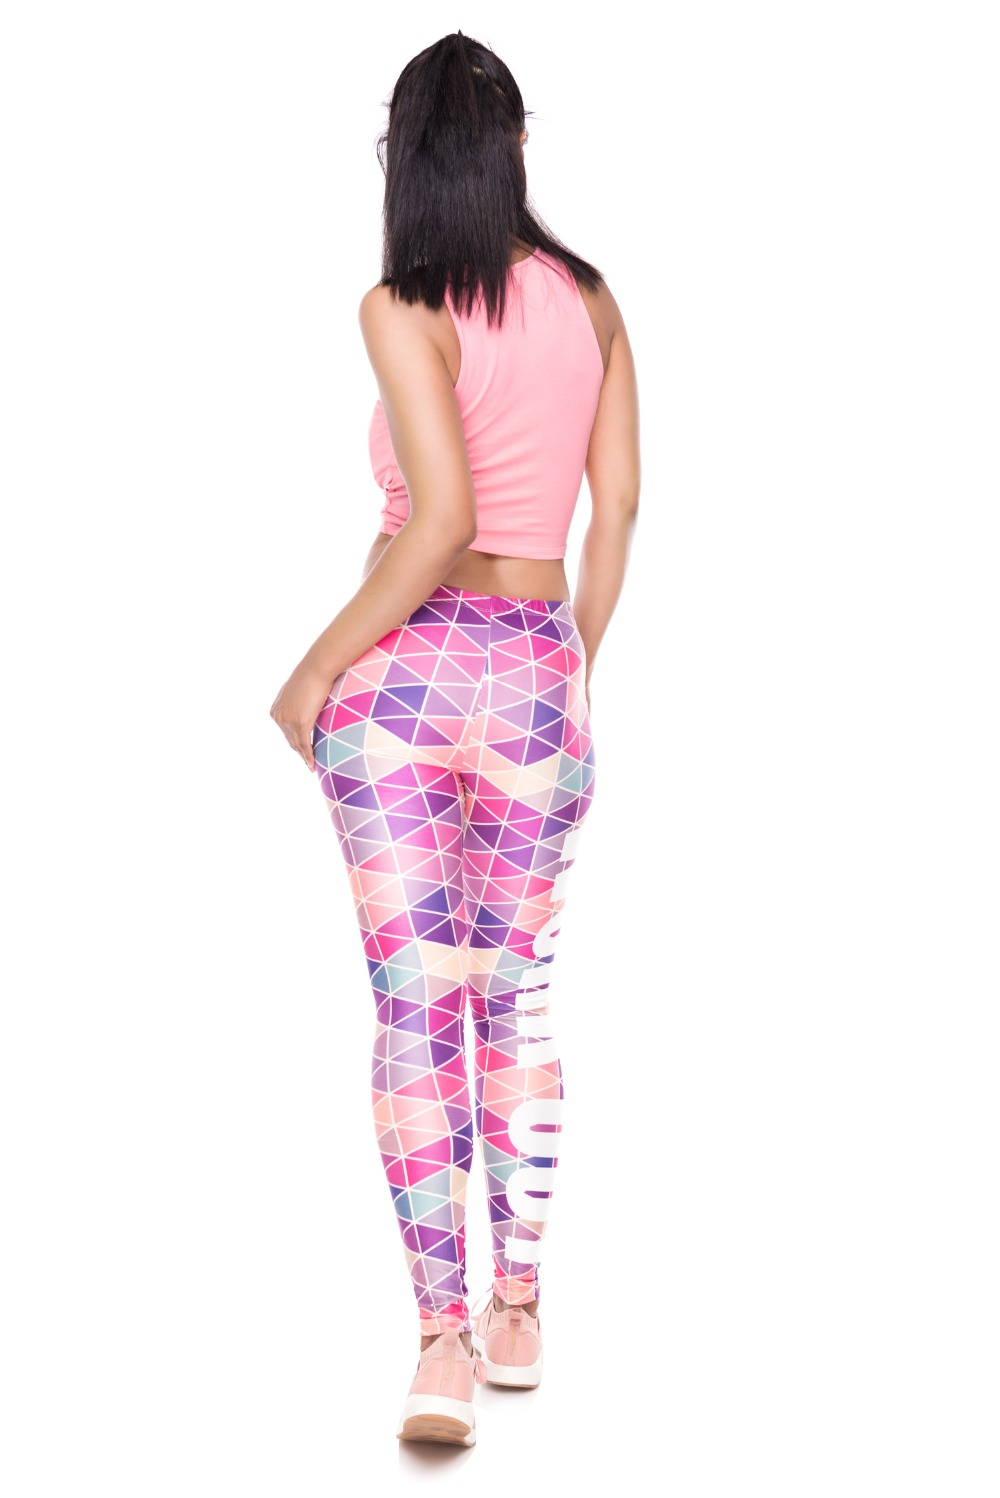 34261 WORK OUT triangle pink (3)